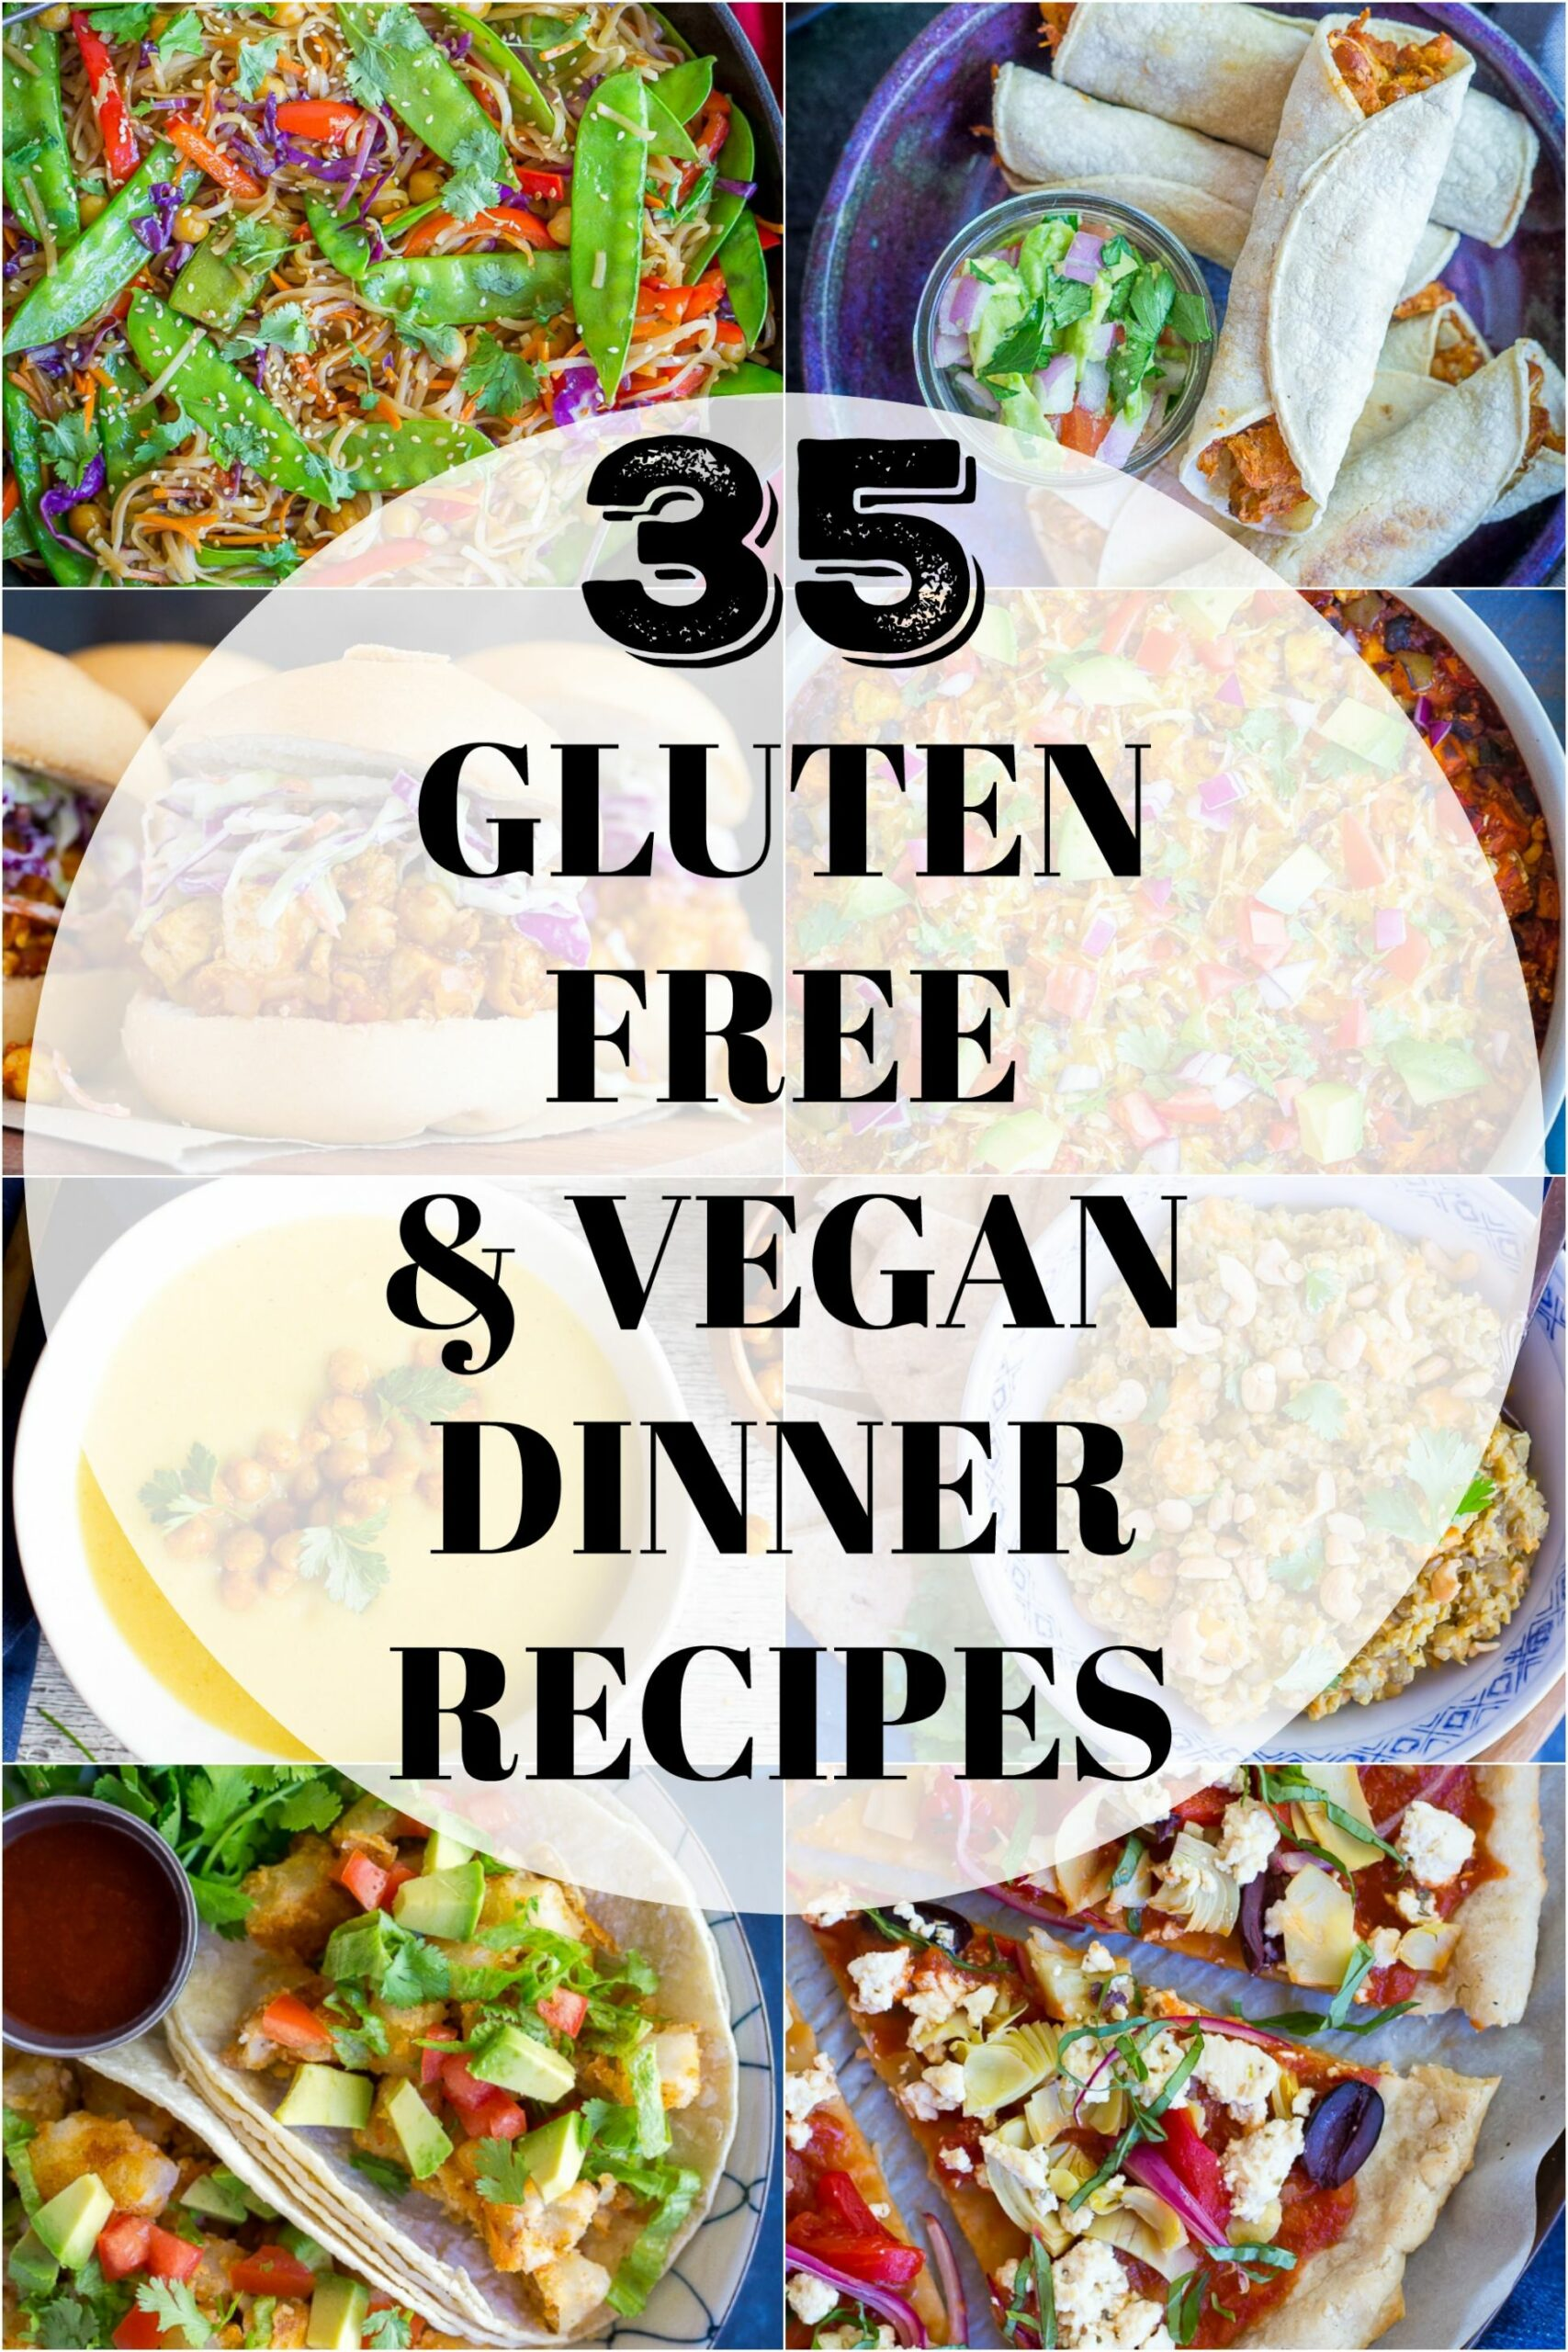 9 Vegan & Gluten Free Dinner Recipes - She Likes Food - Recipes Vegetarian And Gluten Free